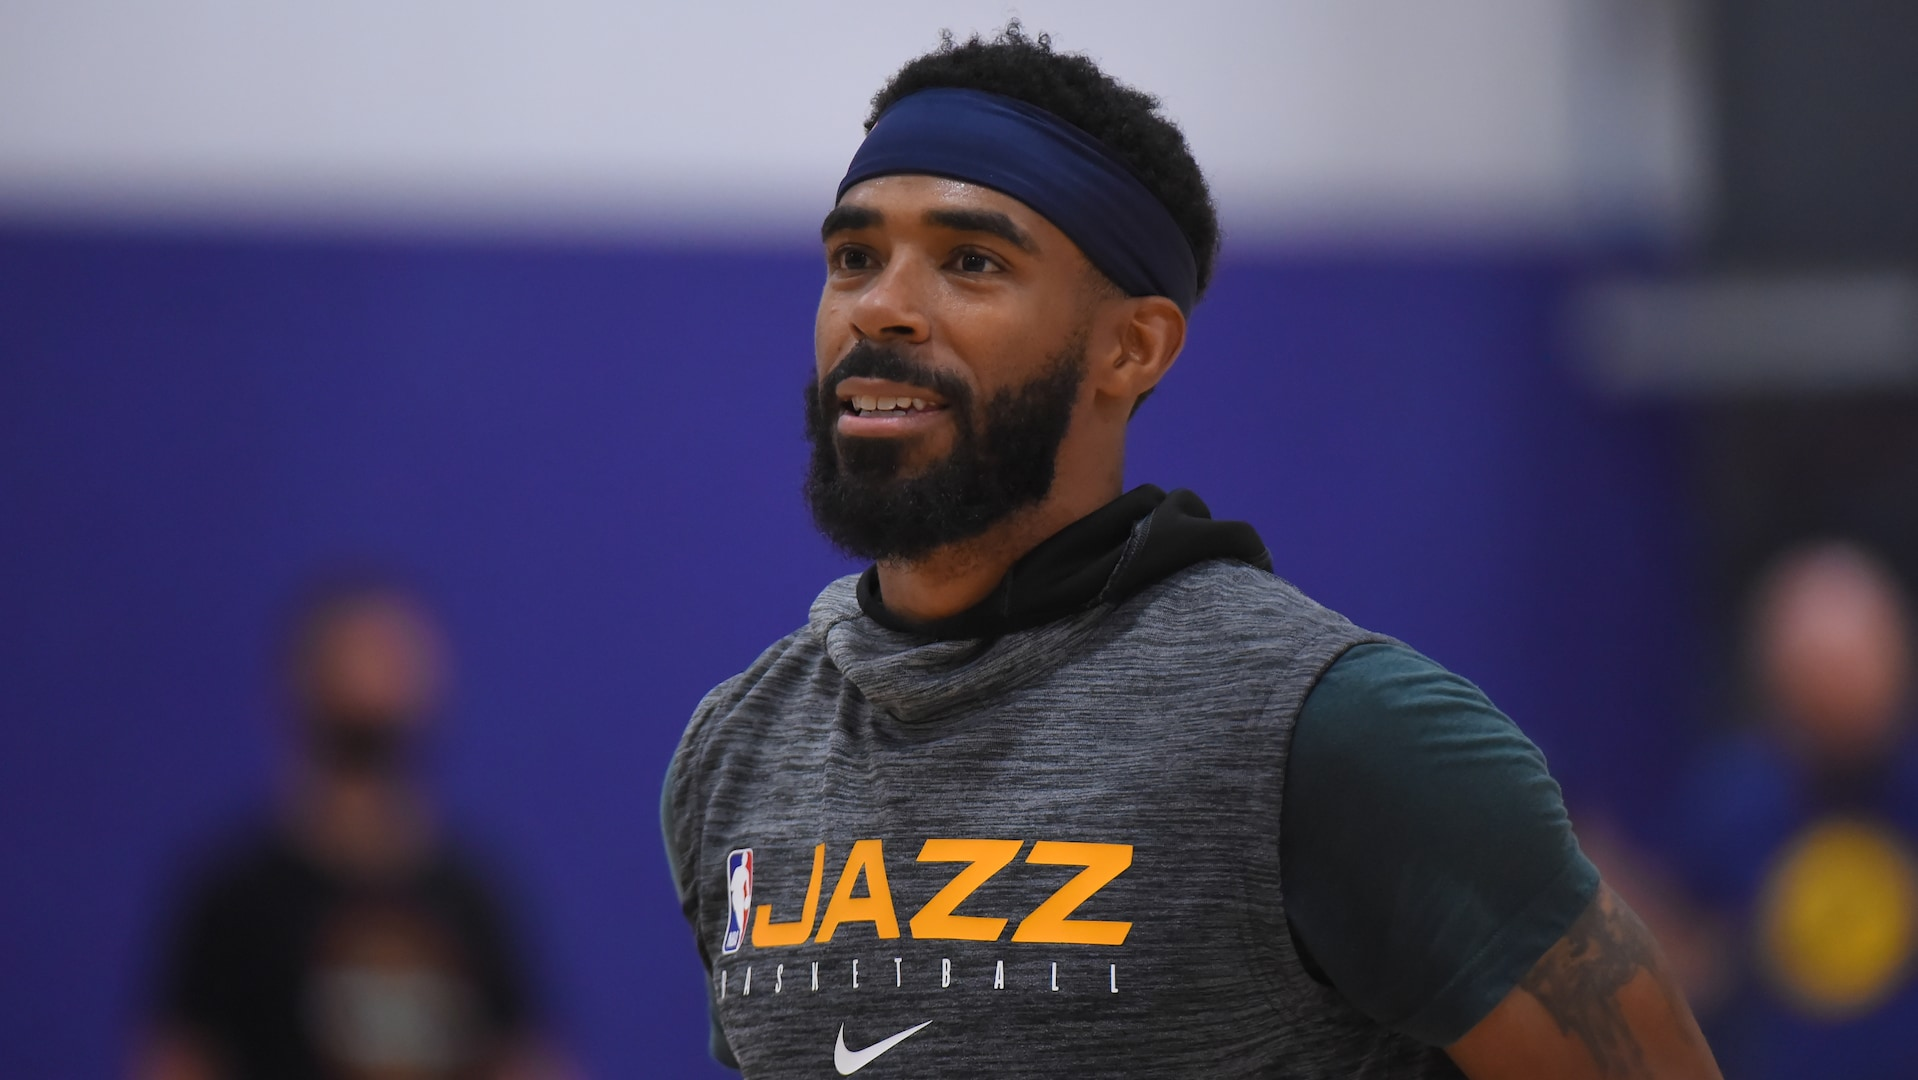 Mike Conley's absence raises 3 first-round questions for Jazz-Nuggets